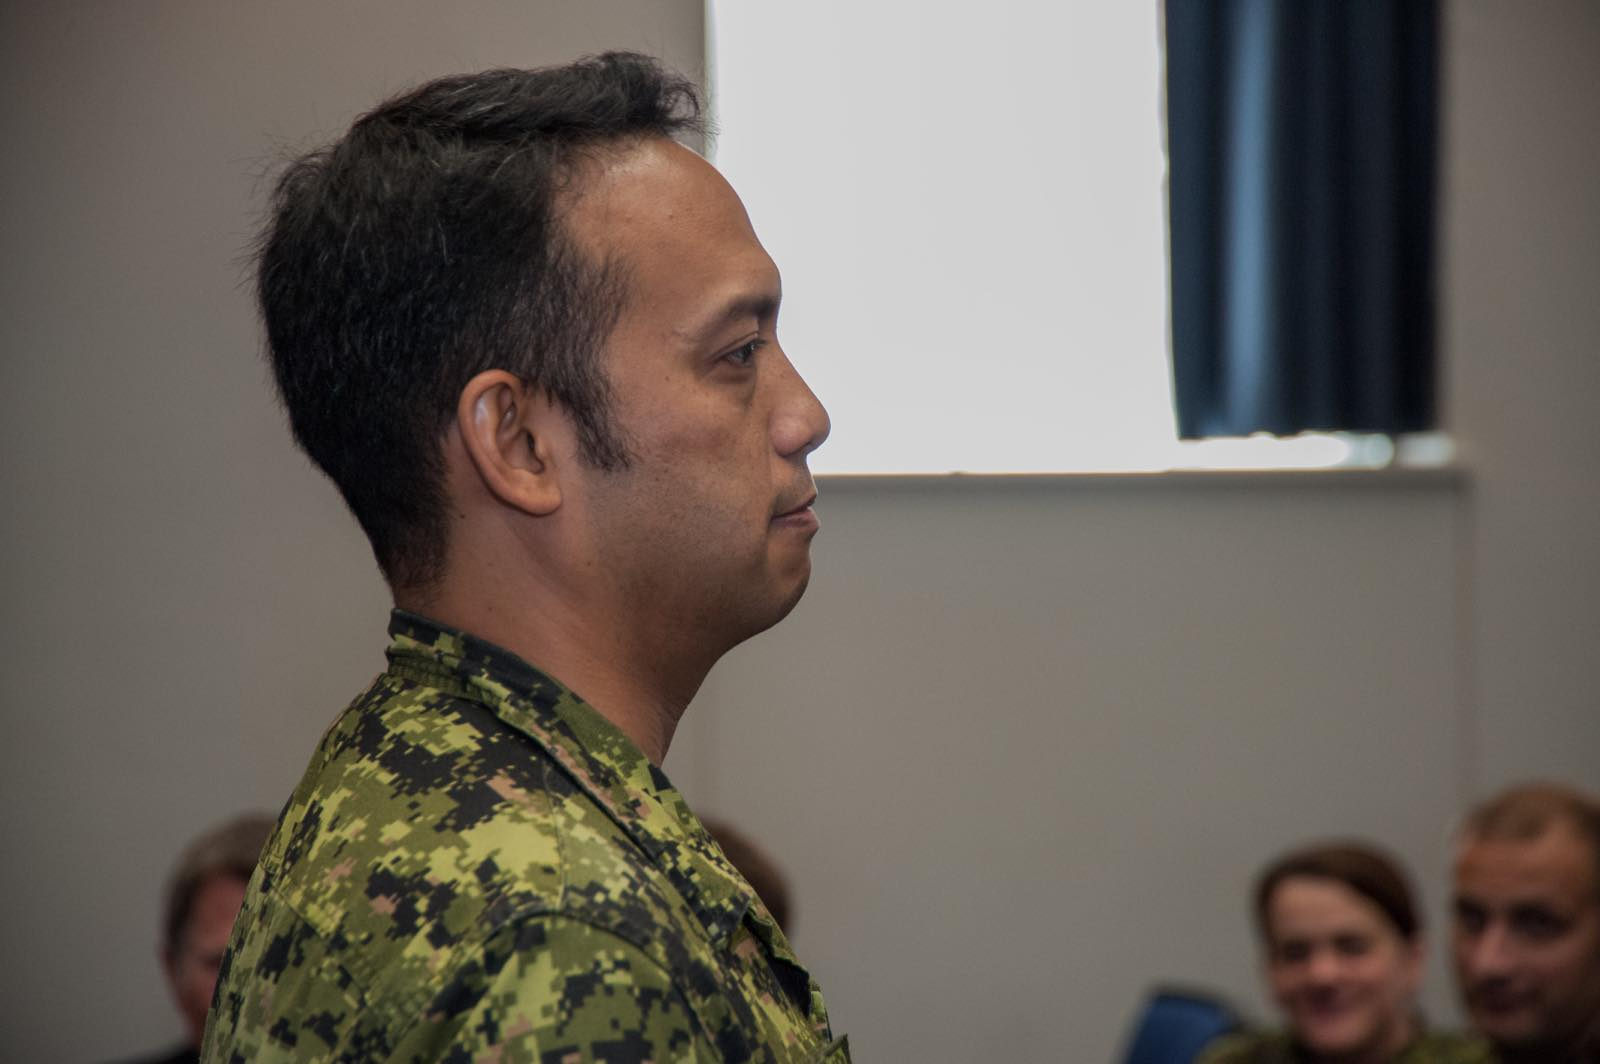 JCSP 43 DL1 Graduation Ceremony - 15 July 2017 - Photo 302